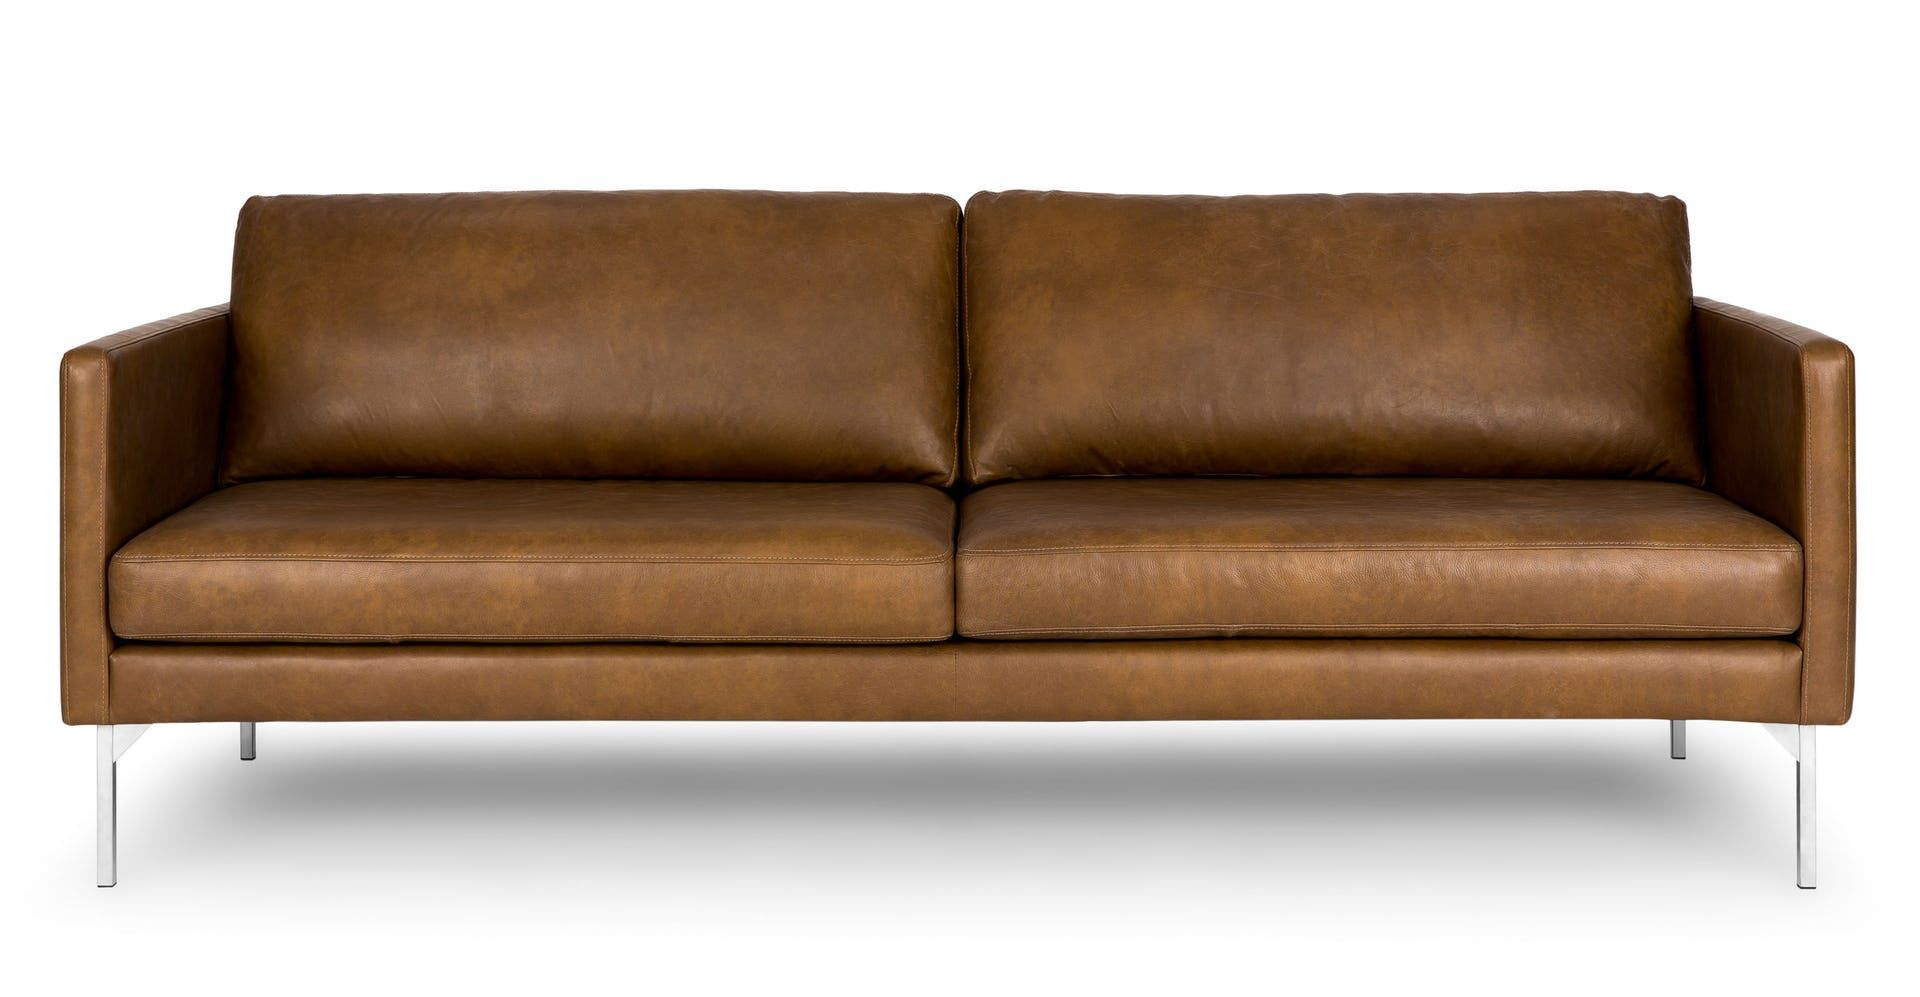 With Its Clean Contemporary Lines The Echo Sofa Is Akin To A Well Made Suit Steel Legs Accentuate The Natural Variat Tan Sofa Modern Leather Sofa Leather Sofa